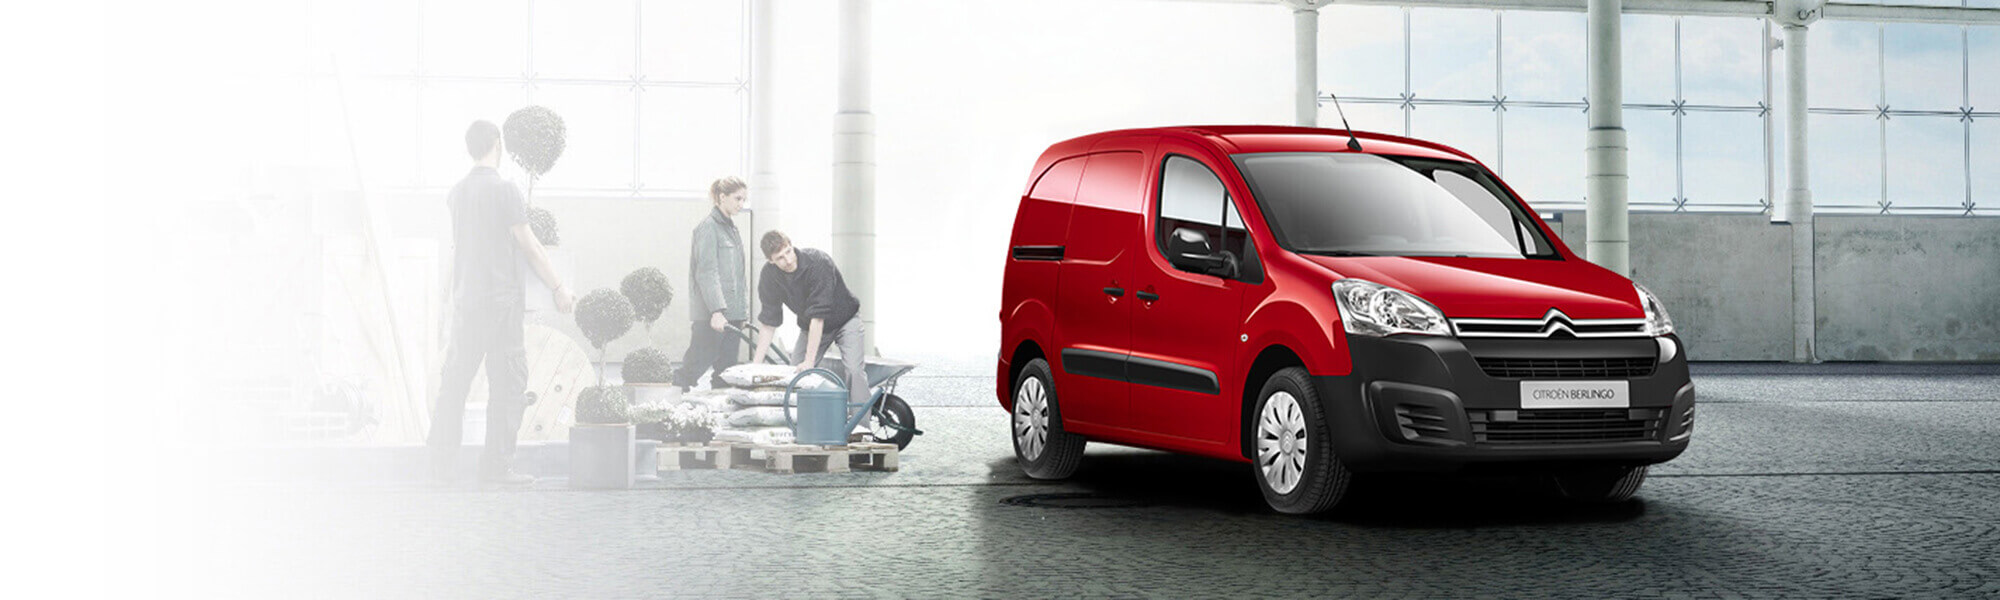 ulmen-citroen-berlingo-slider-1